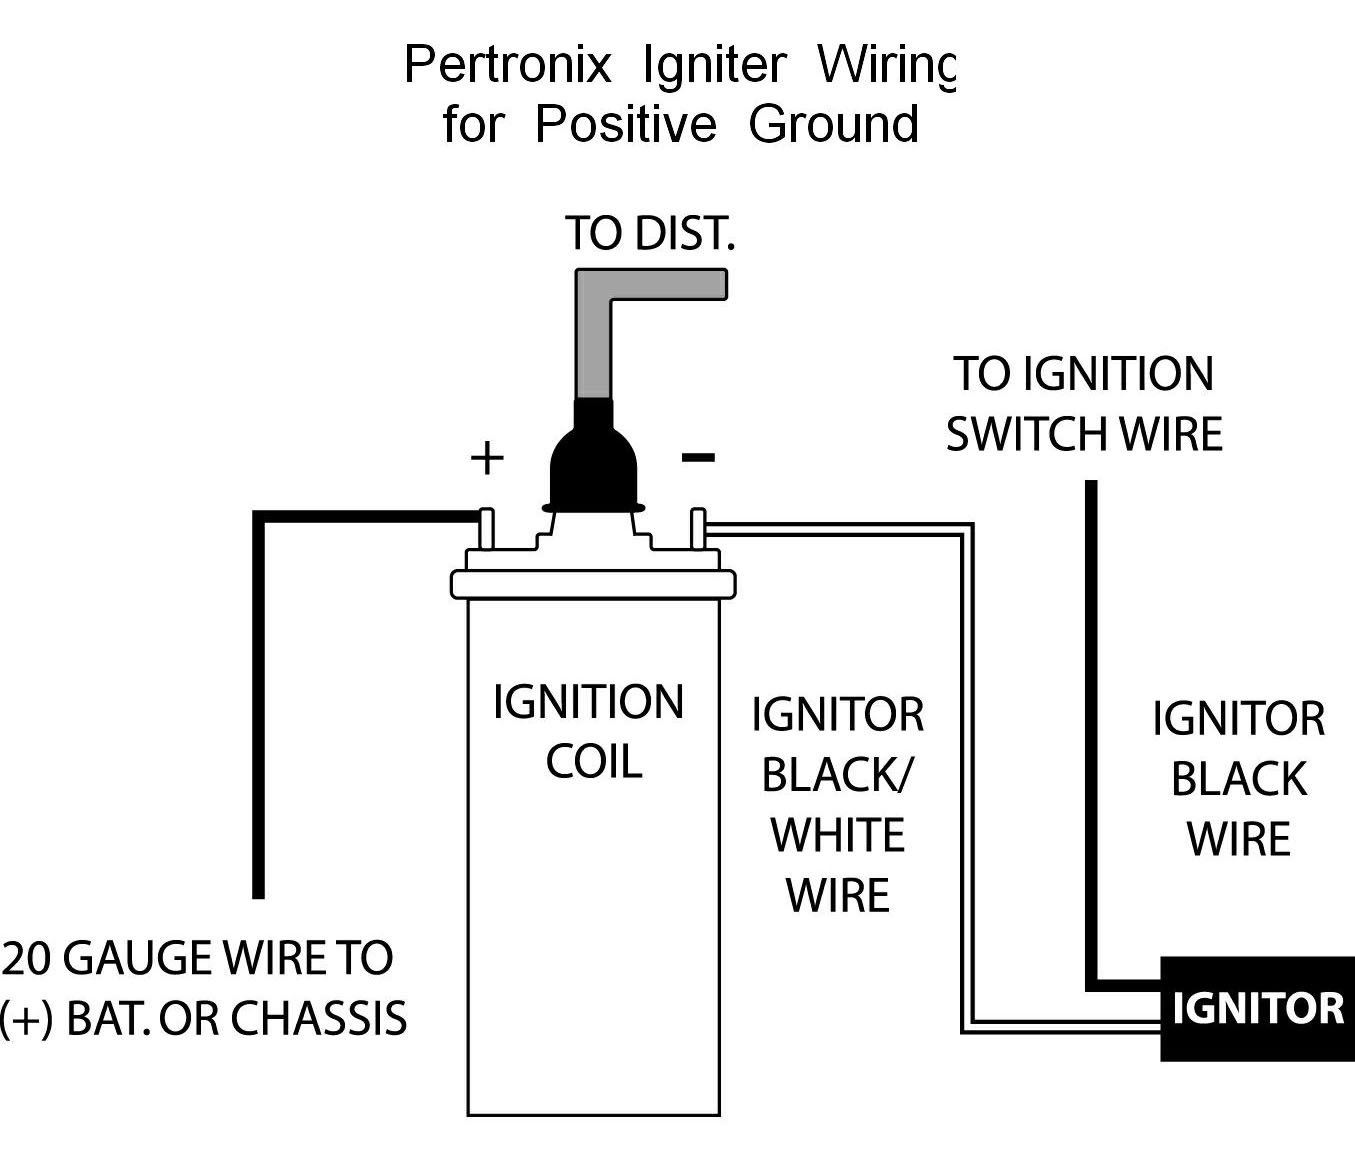 ignition coil wiring diagram positive earth wiring diagram u2022 rh championapp co wiring diagram ballast resistor ignition coil ignition coil wiring diagram manual